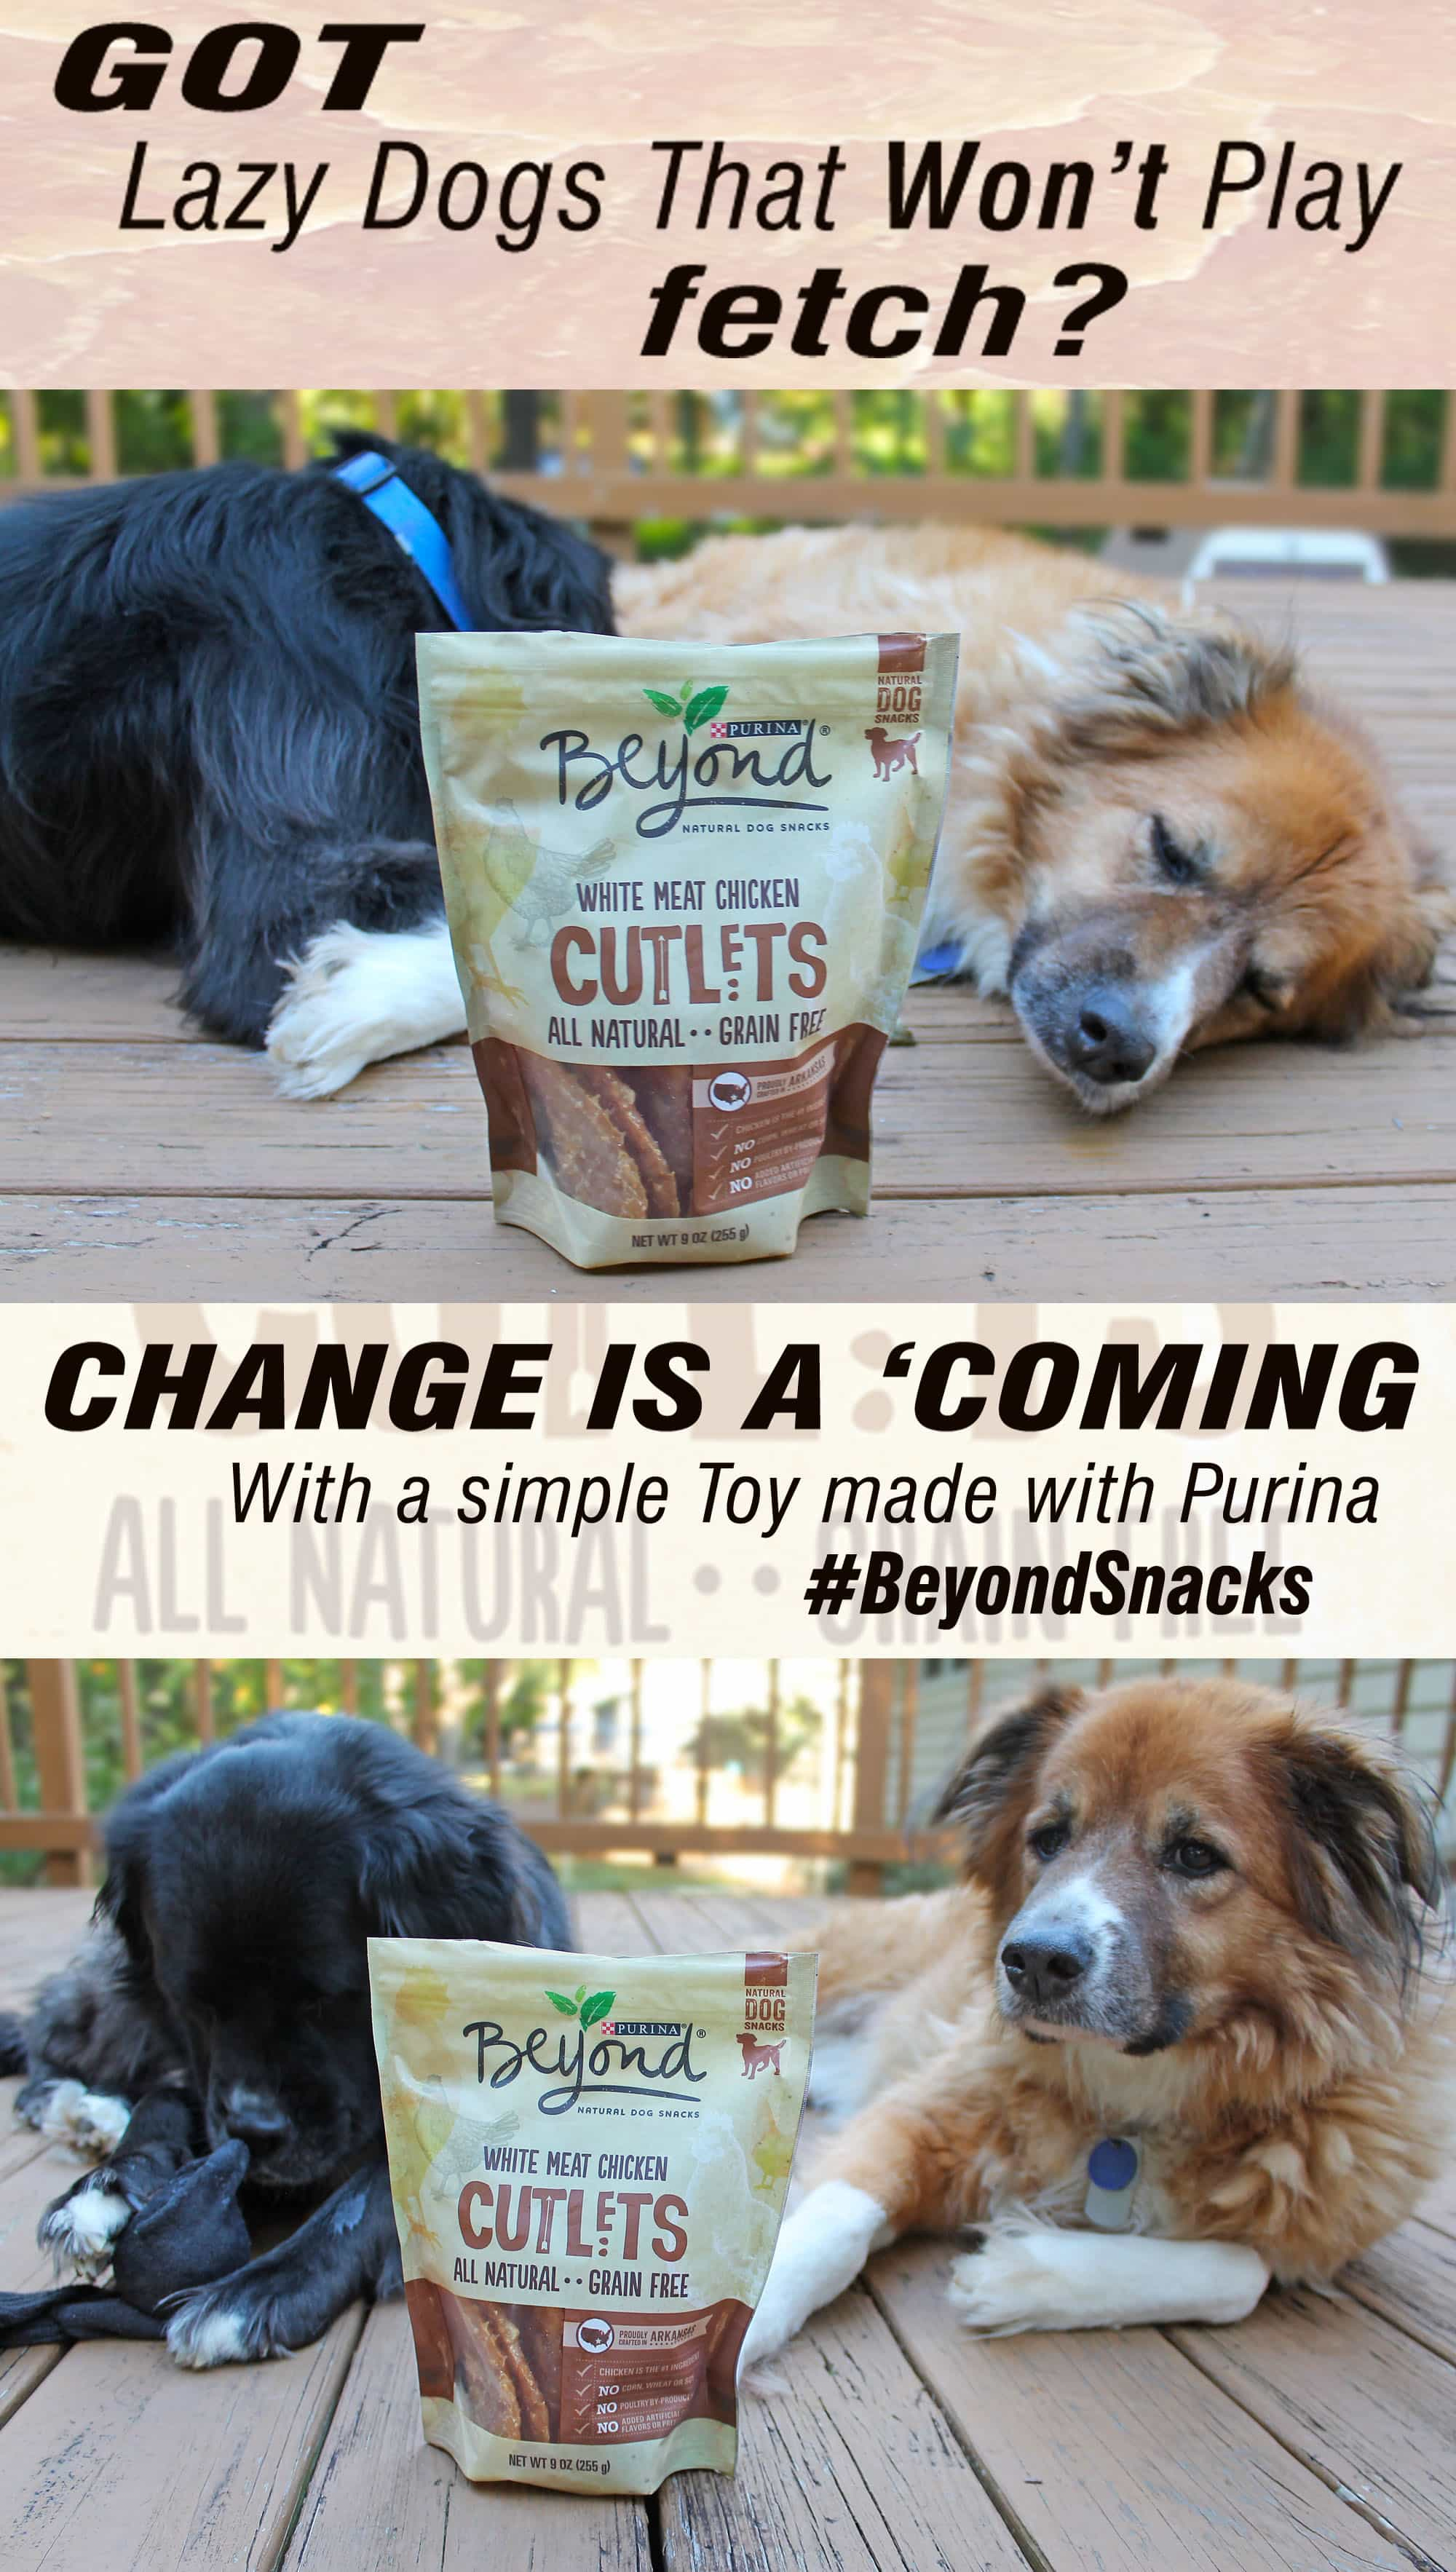 Lazy Dogs Before & After #BeyondSnacks inspired toys ggnoads